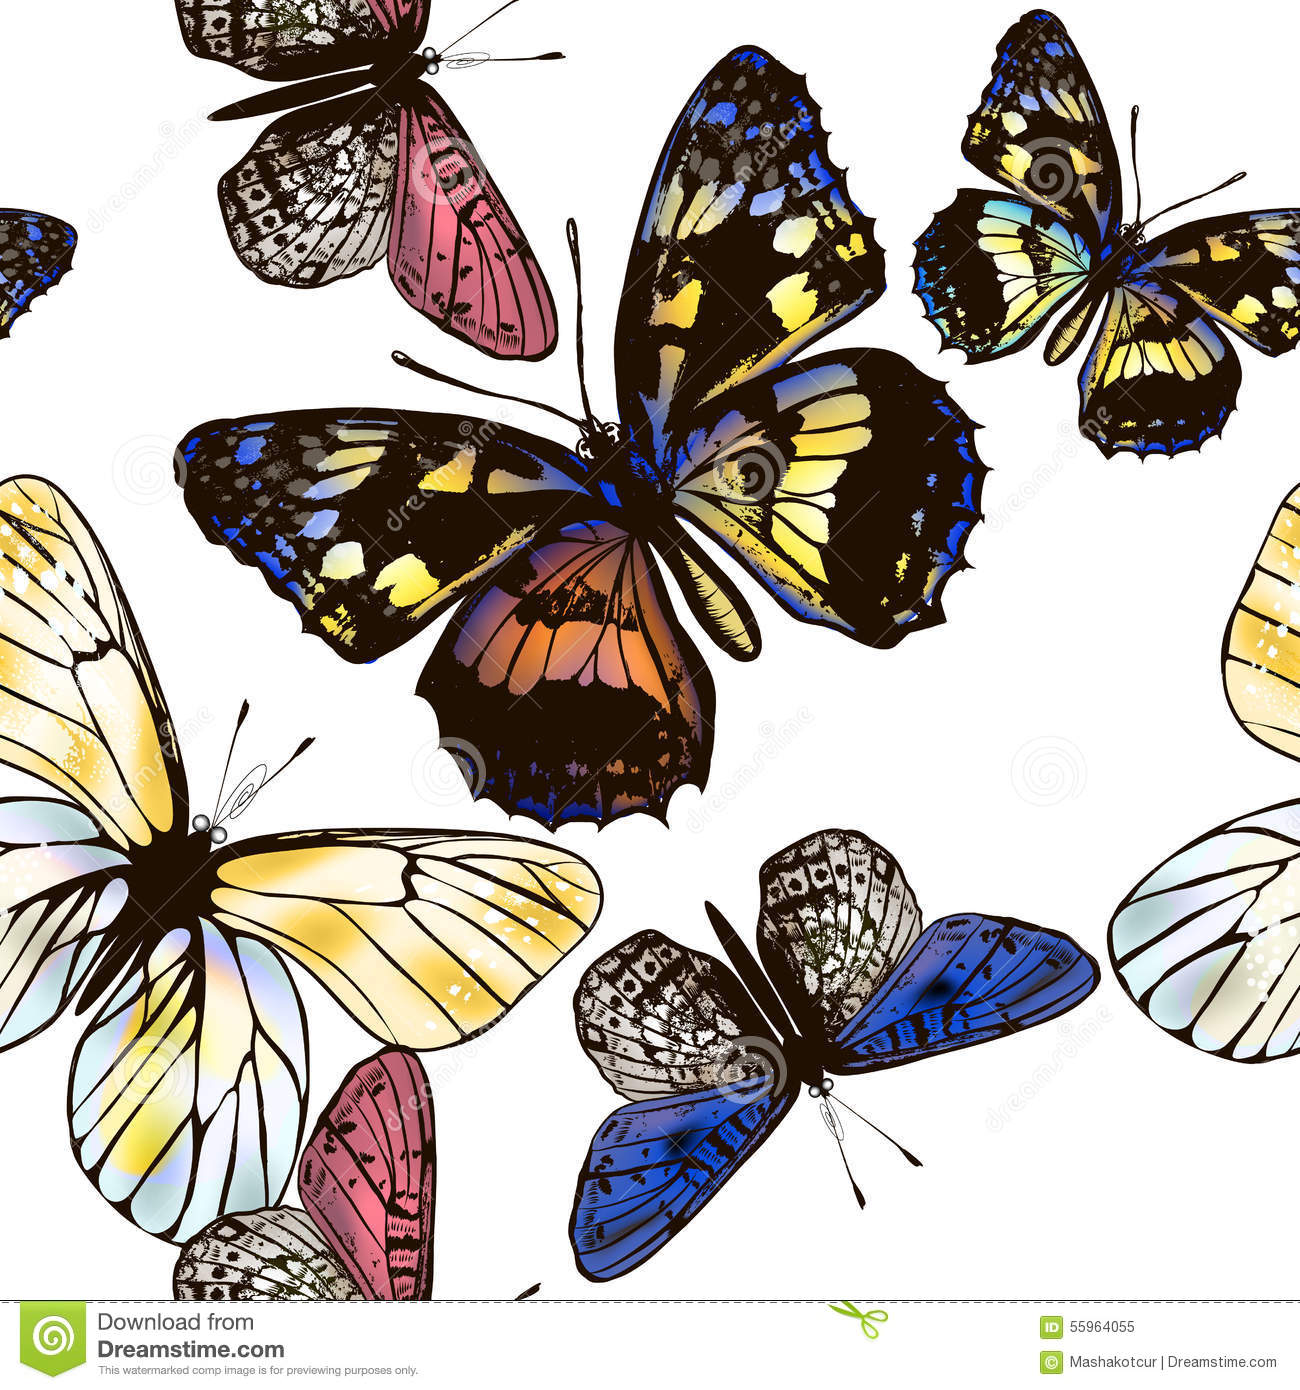 64 wallpaper butterfly designer snapshot best wallpaper hd for Decorators best wallpaper